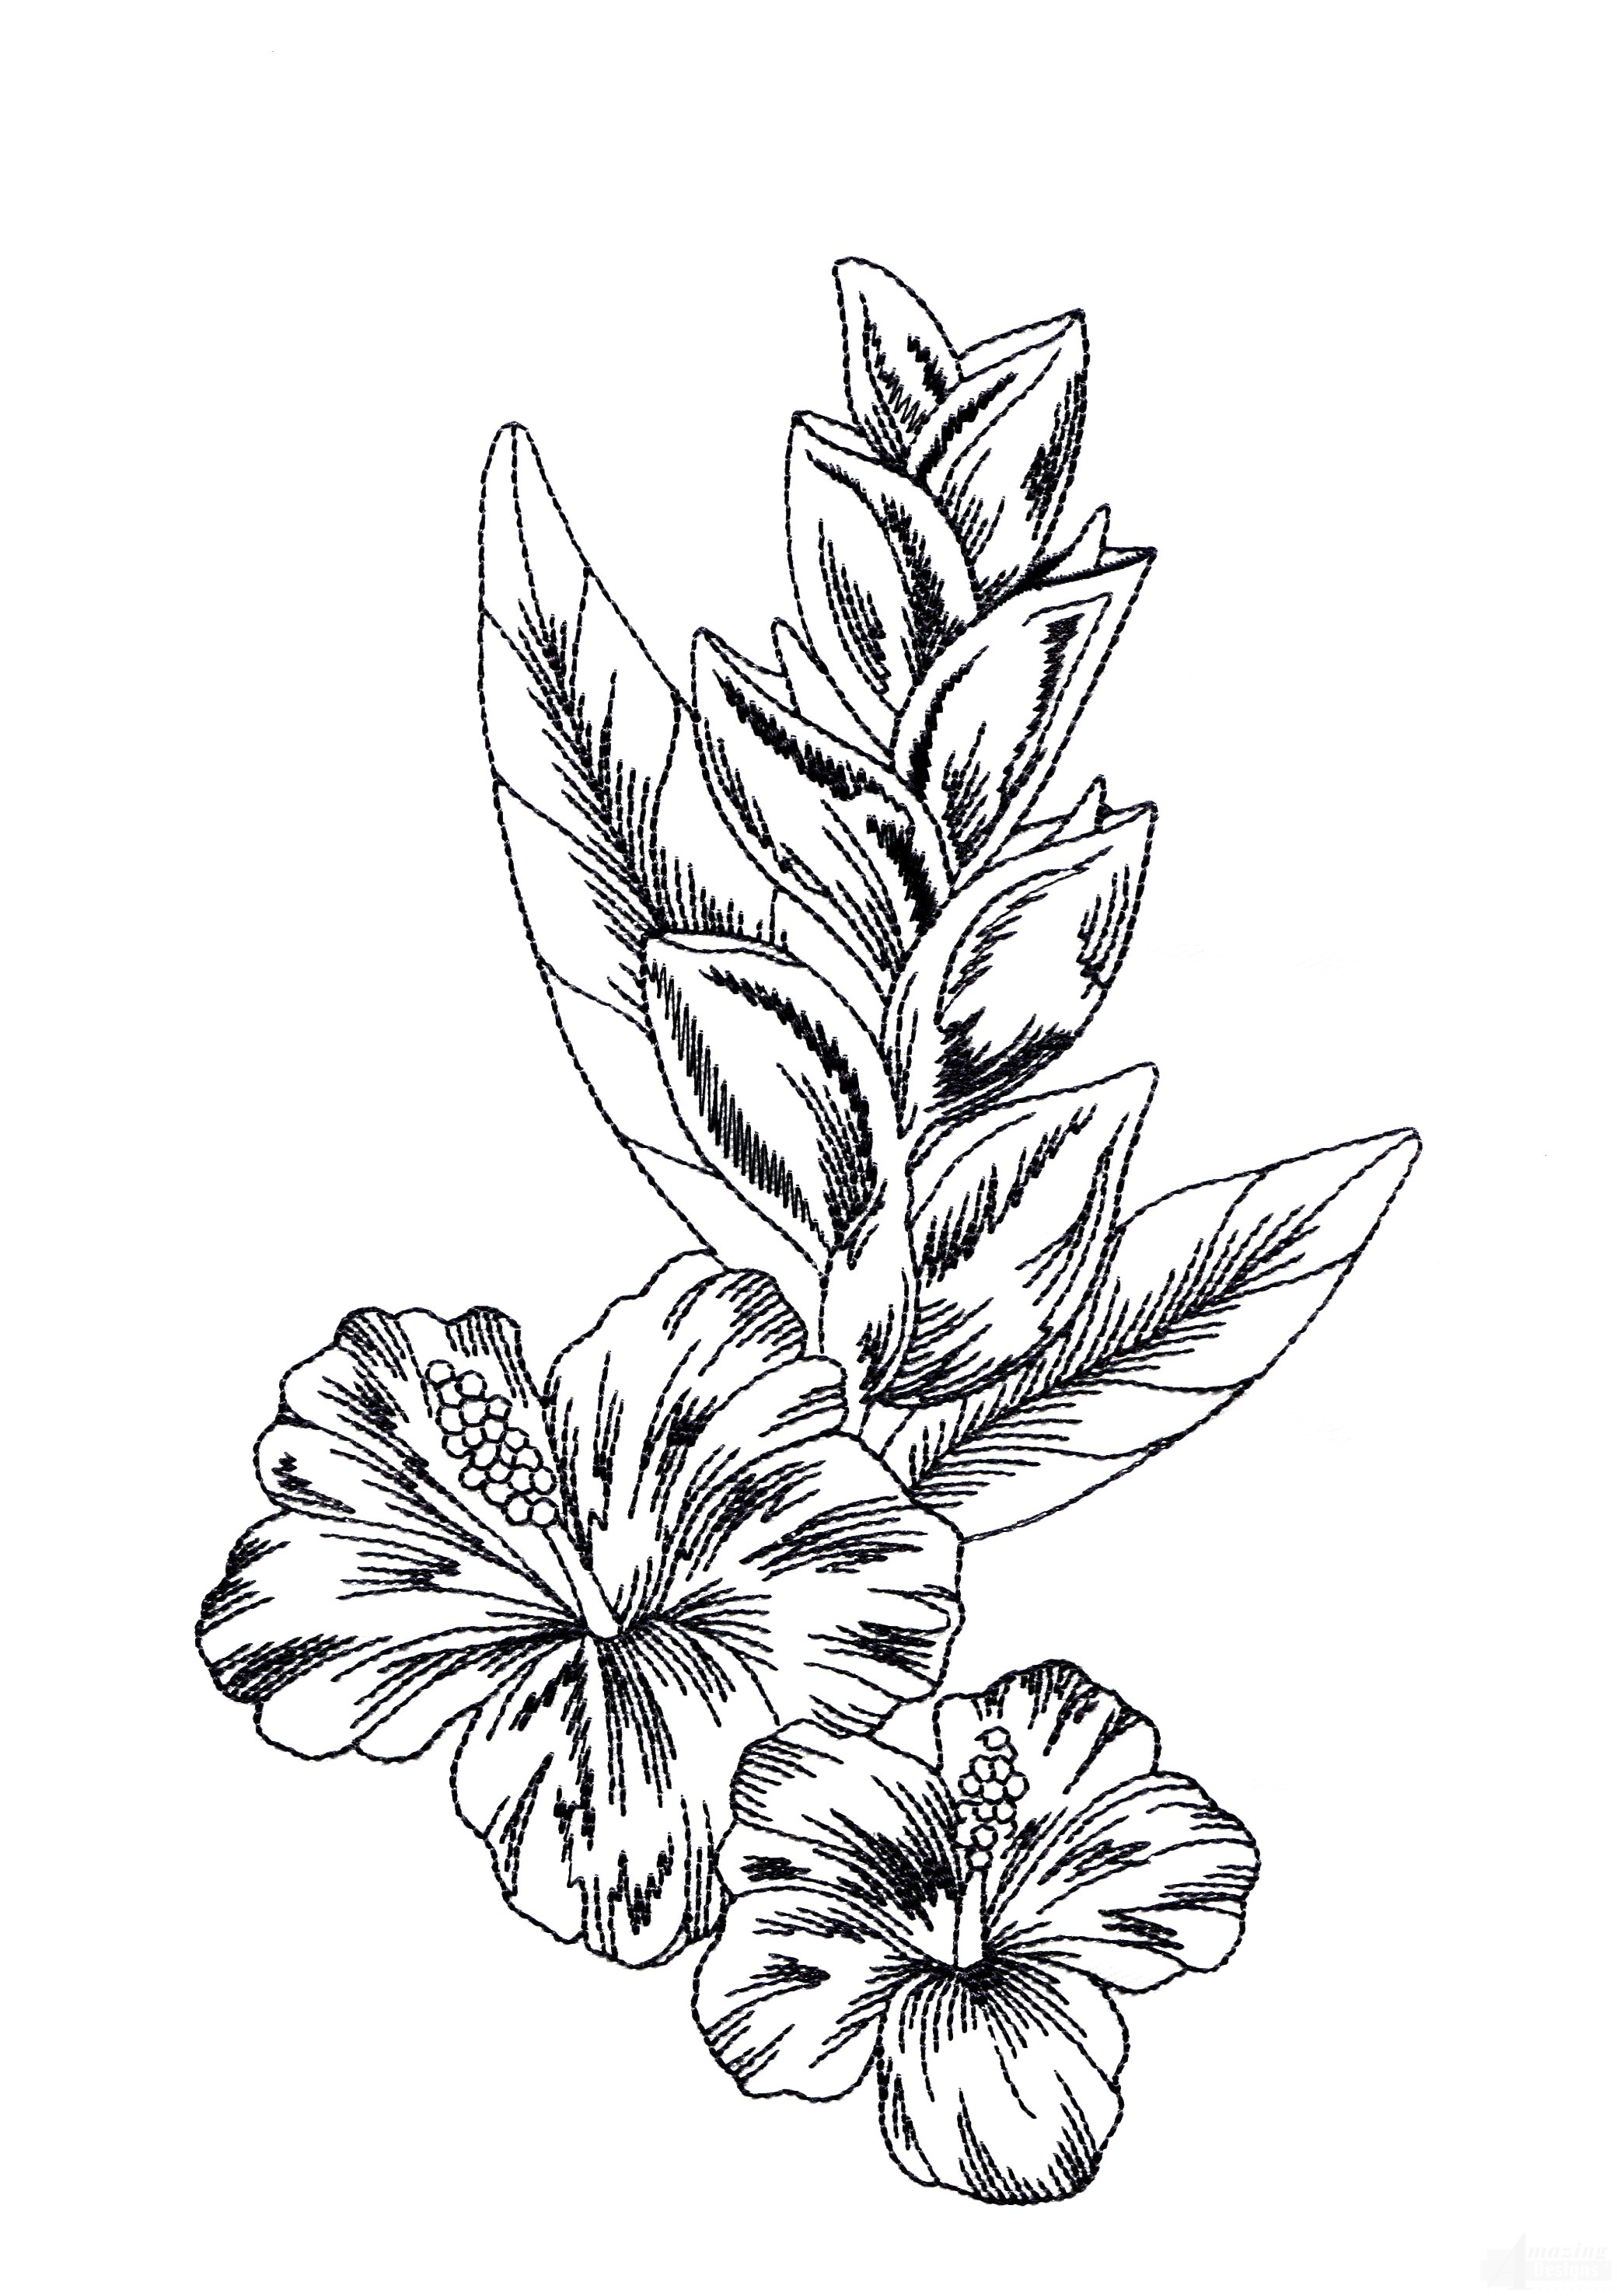 2080x2954 Exotic Flower Drawings Tropical Flower Drawings Free Download